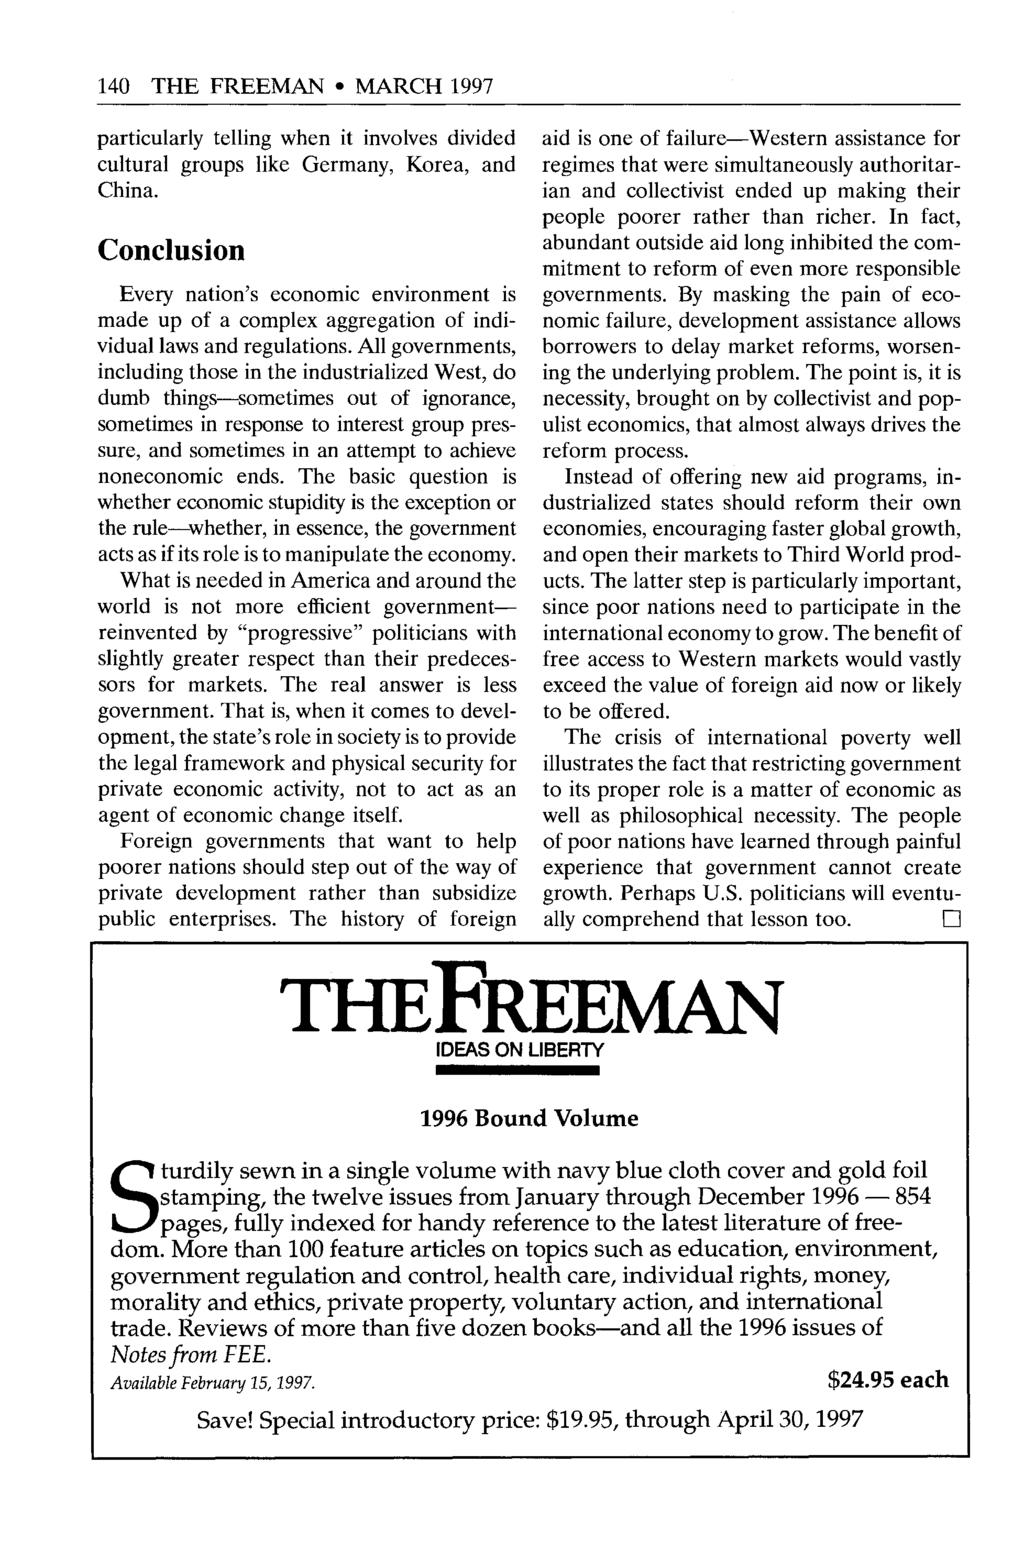 140 THE FREEMAN MARCH 1997 particularly telling when it involves divided cultural groups like Germany, Korea, and China.